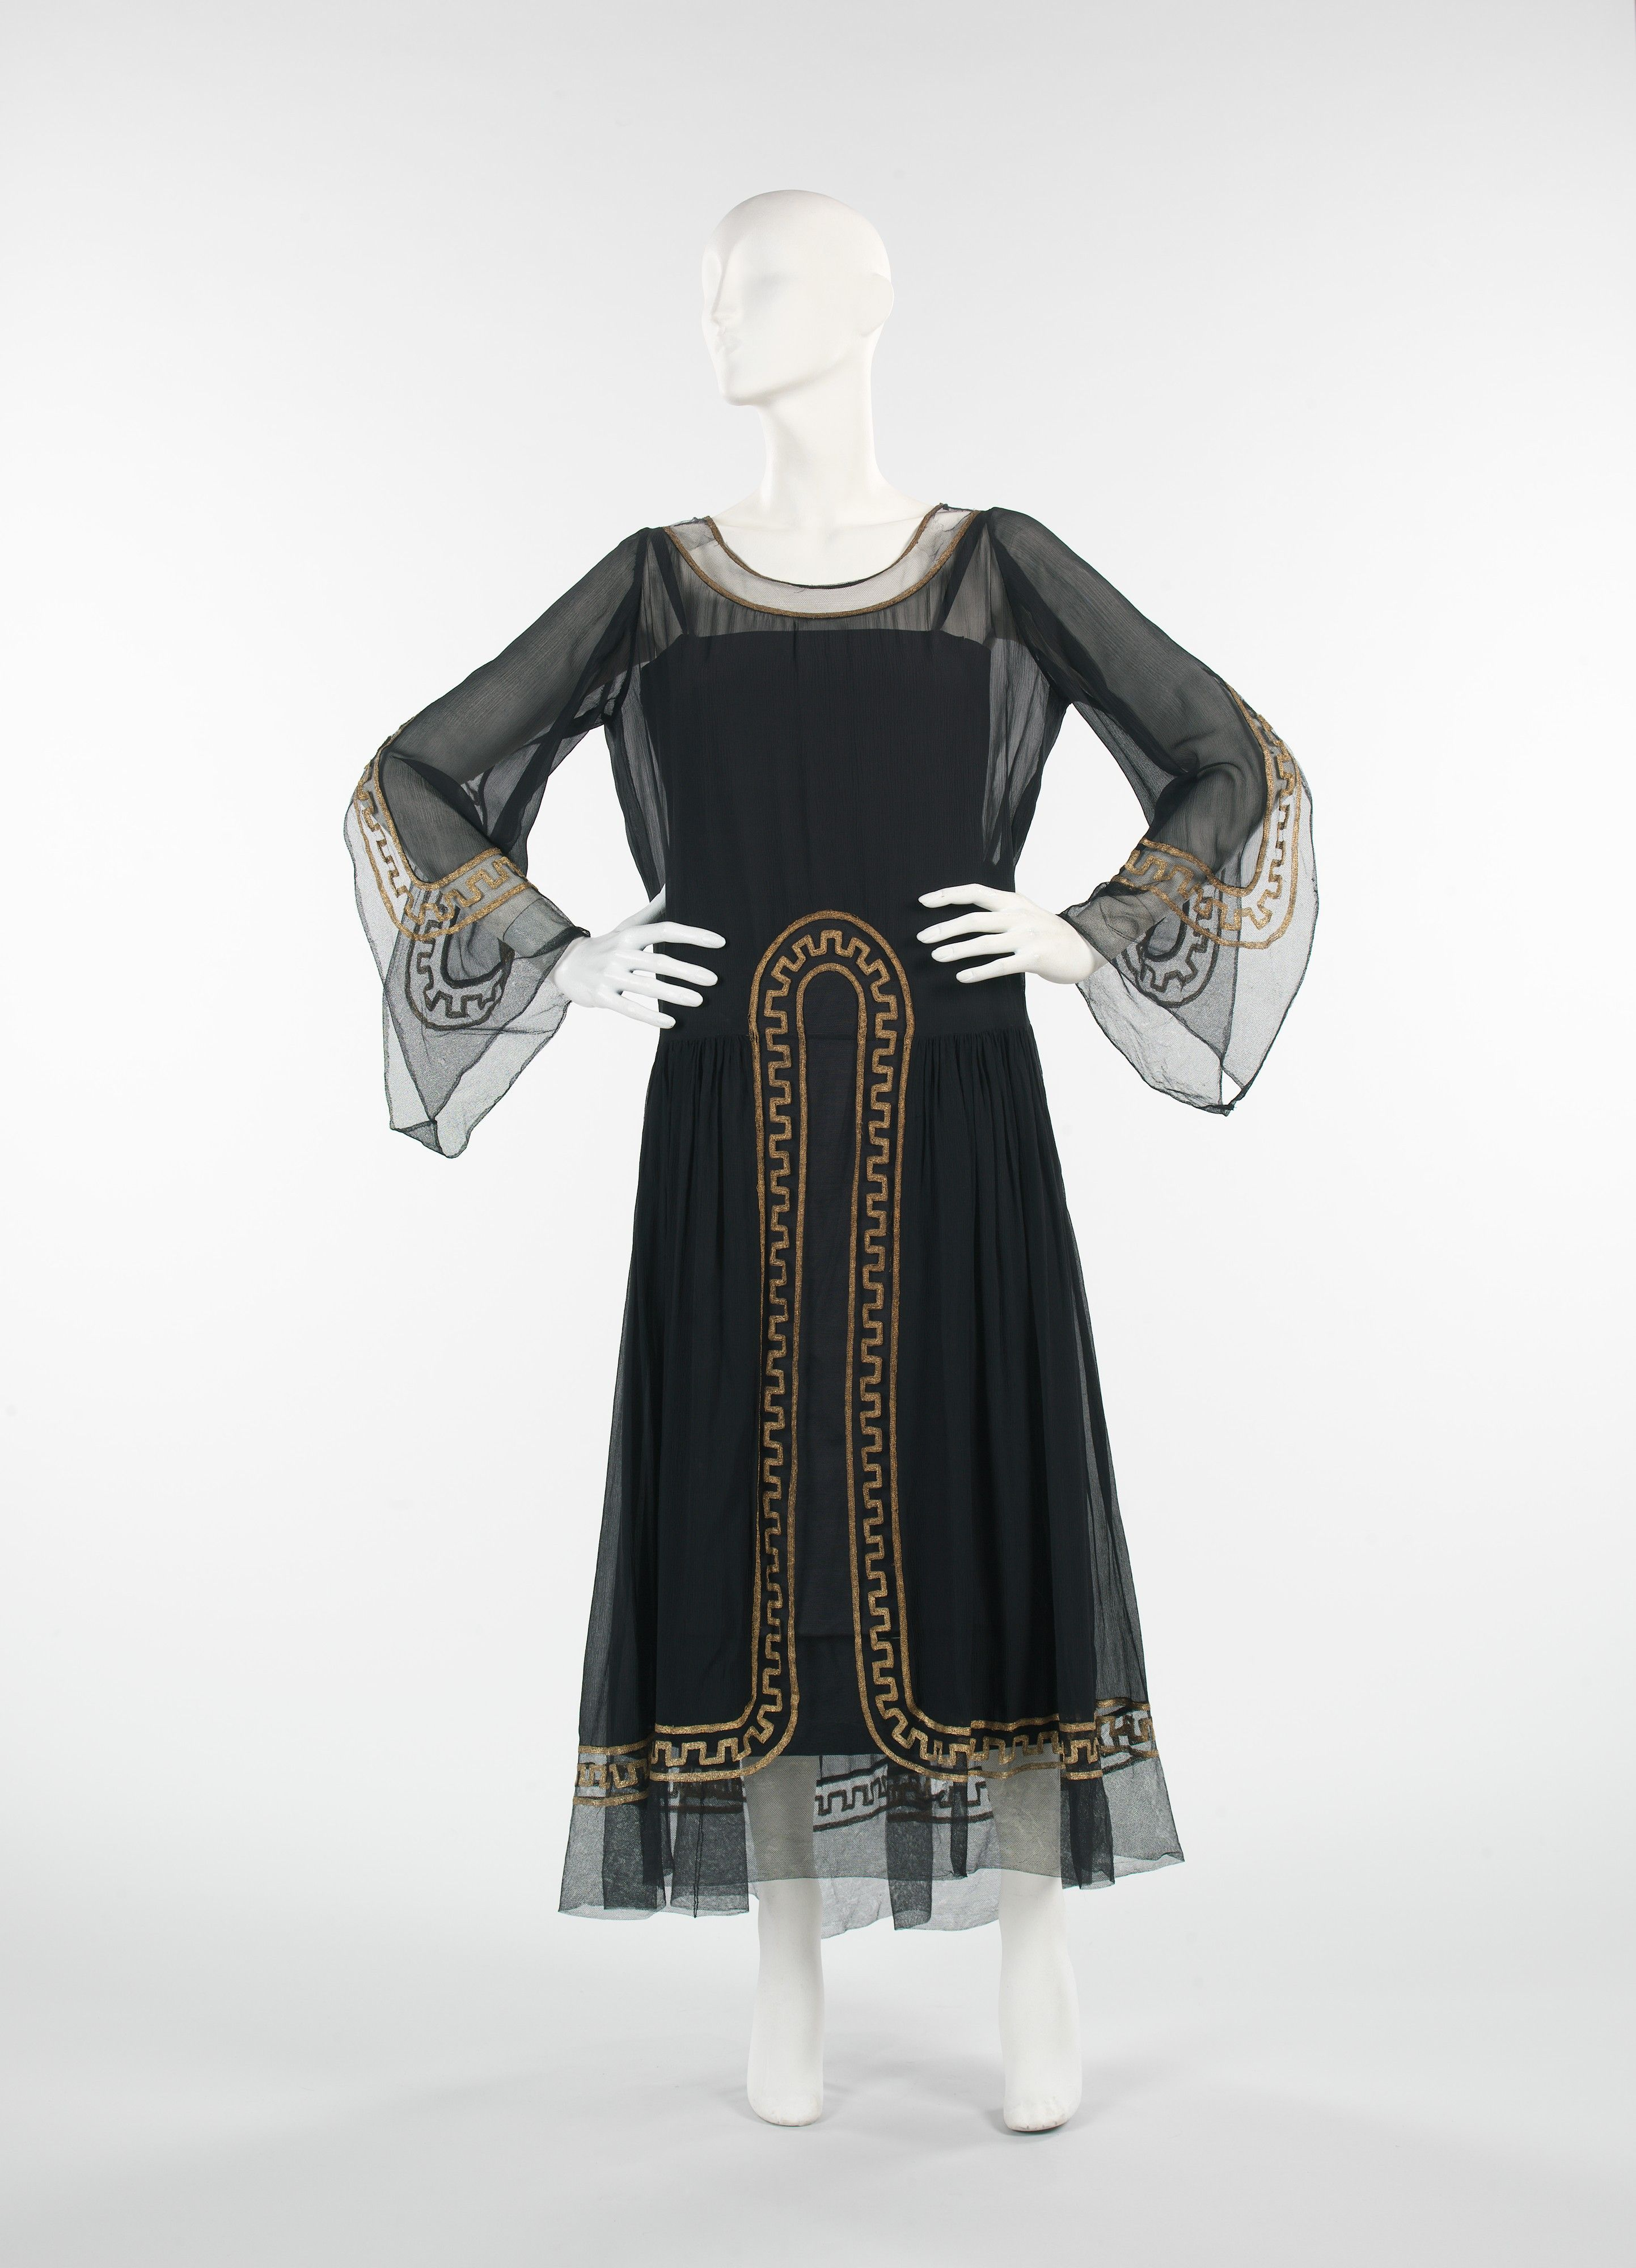 """Evening Dress, House of Lanvin (French, founded 1889): 1925, French, silk/metal. """"...The basic silhouette on this Lanvin dress evokes religious robes worn by monks while the sheer textile makes it elegant and refined, trademarks of her work. In addition, the Greek key motif shows her knowledge and interest in incorporating classical design motifs in her fashions."""""""